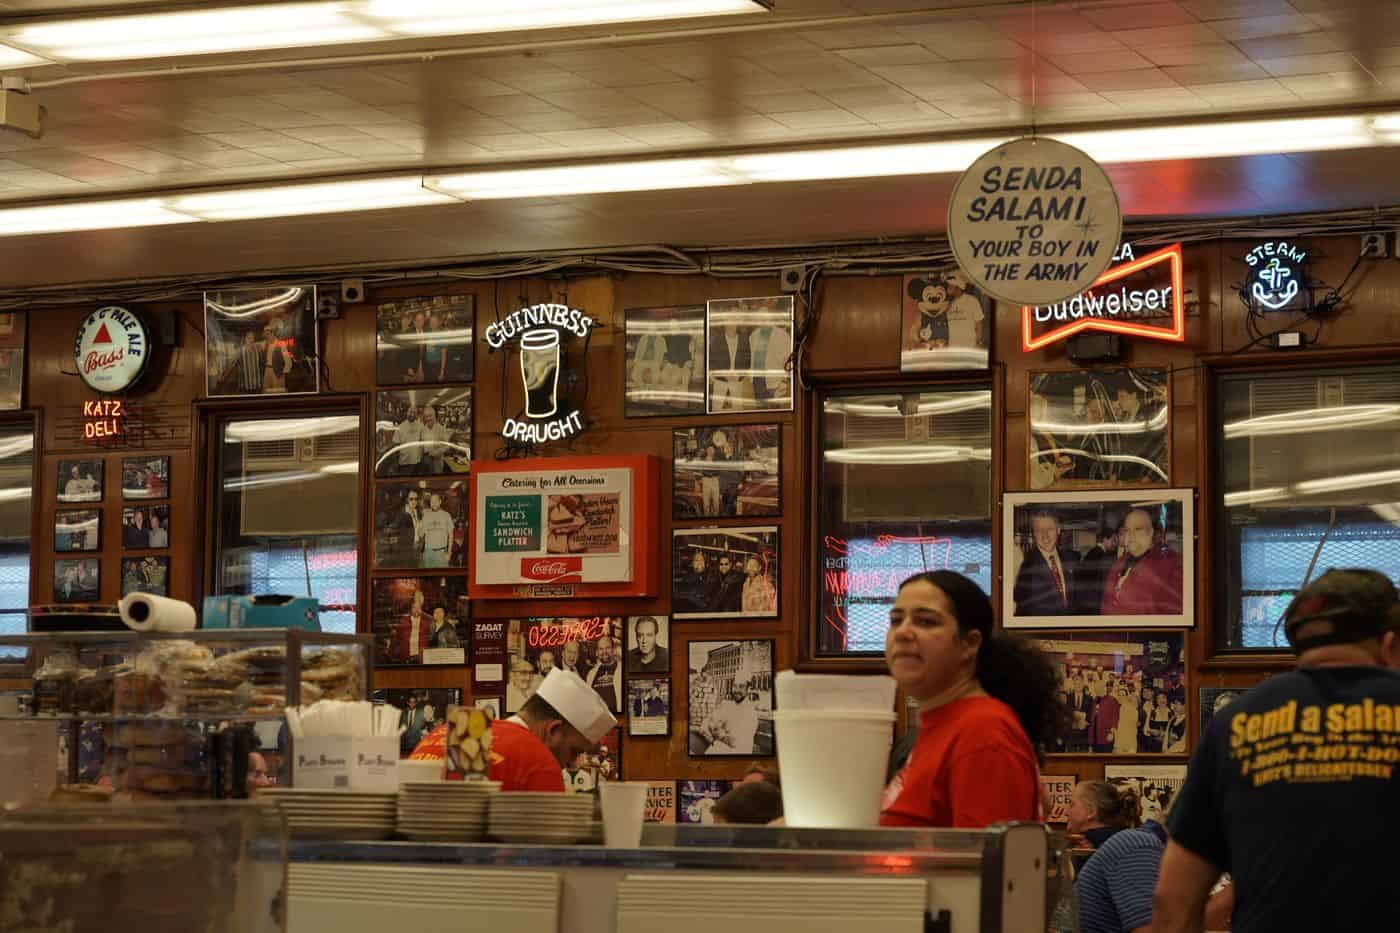 New York City – Innenansicht des Katz Deli in Manhattan